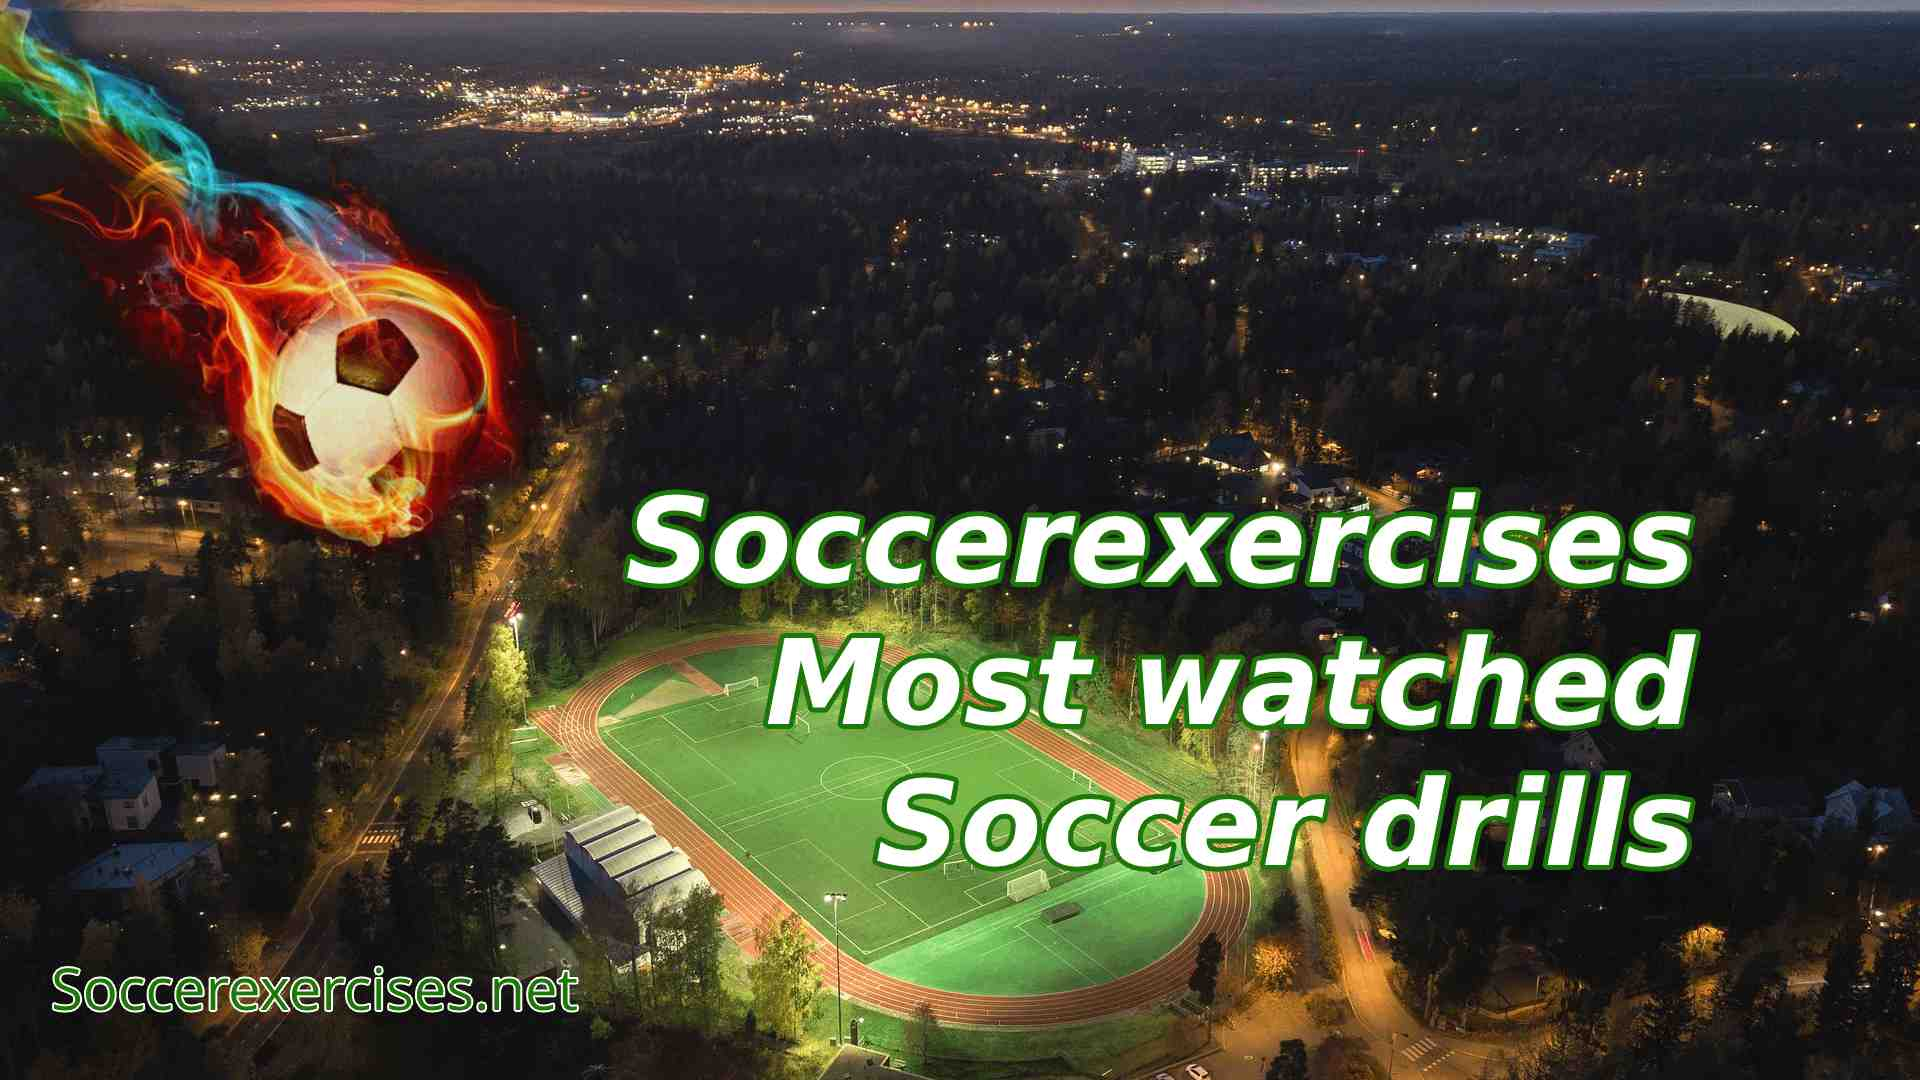 Soccer exercises Most watched soccer drills